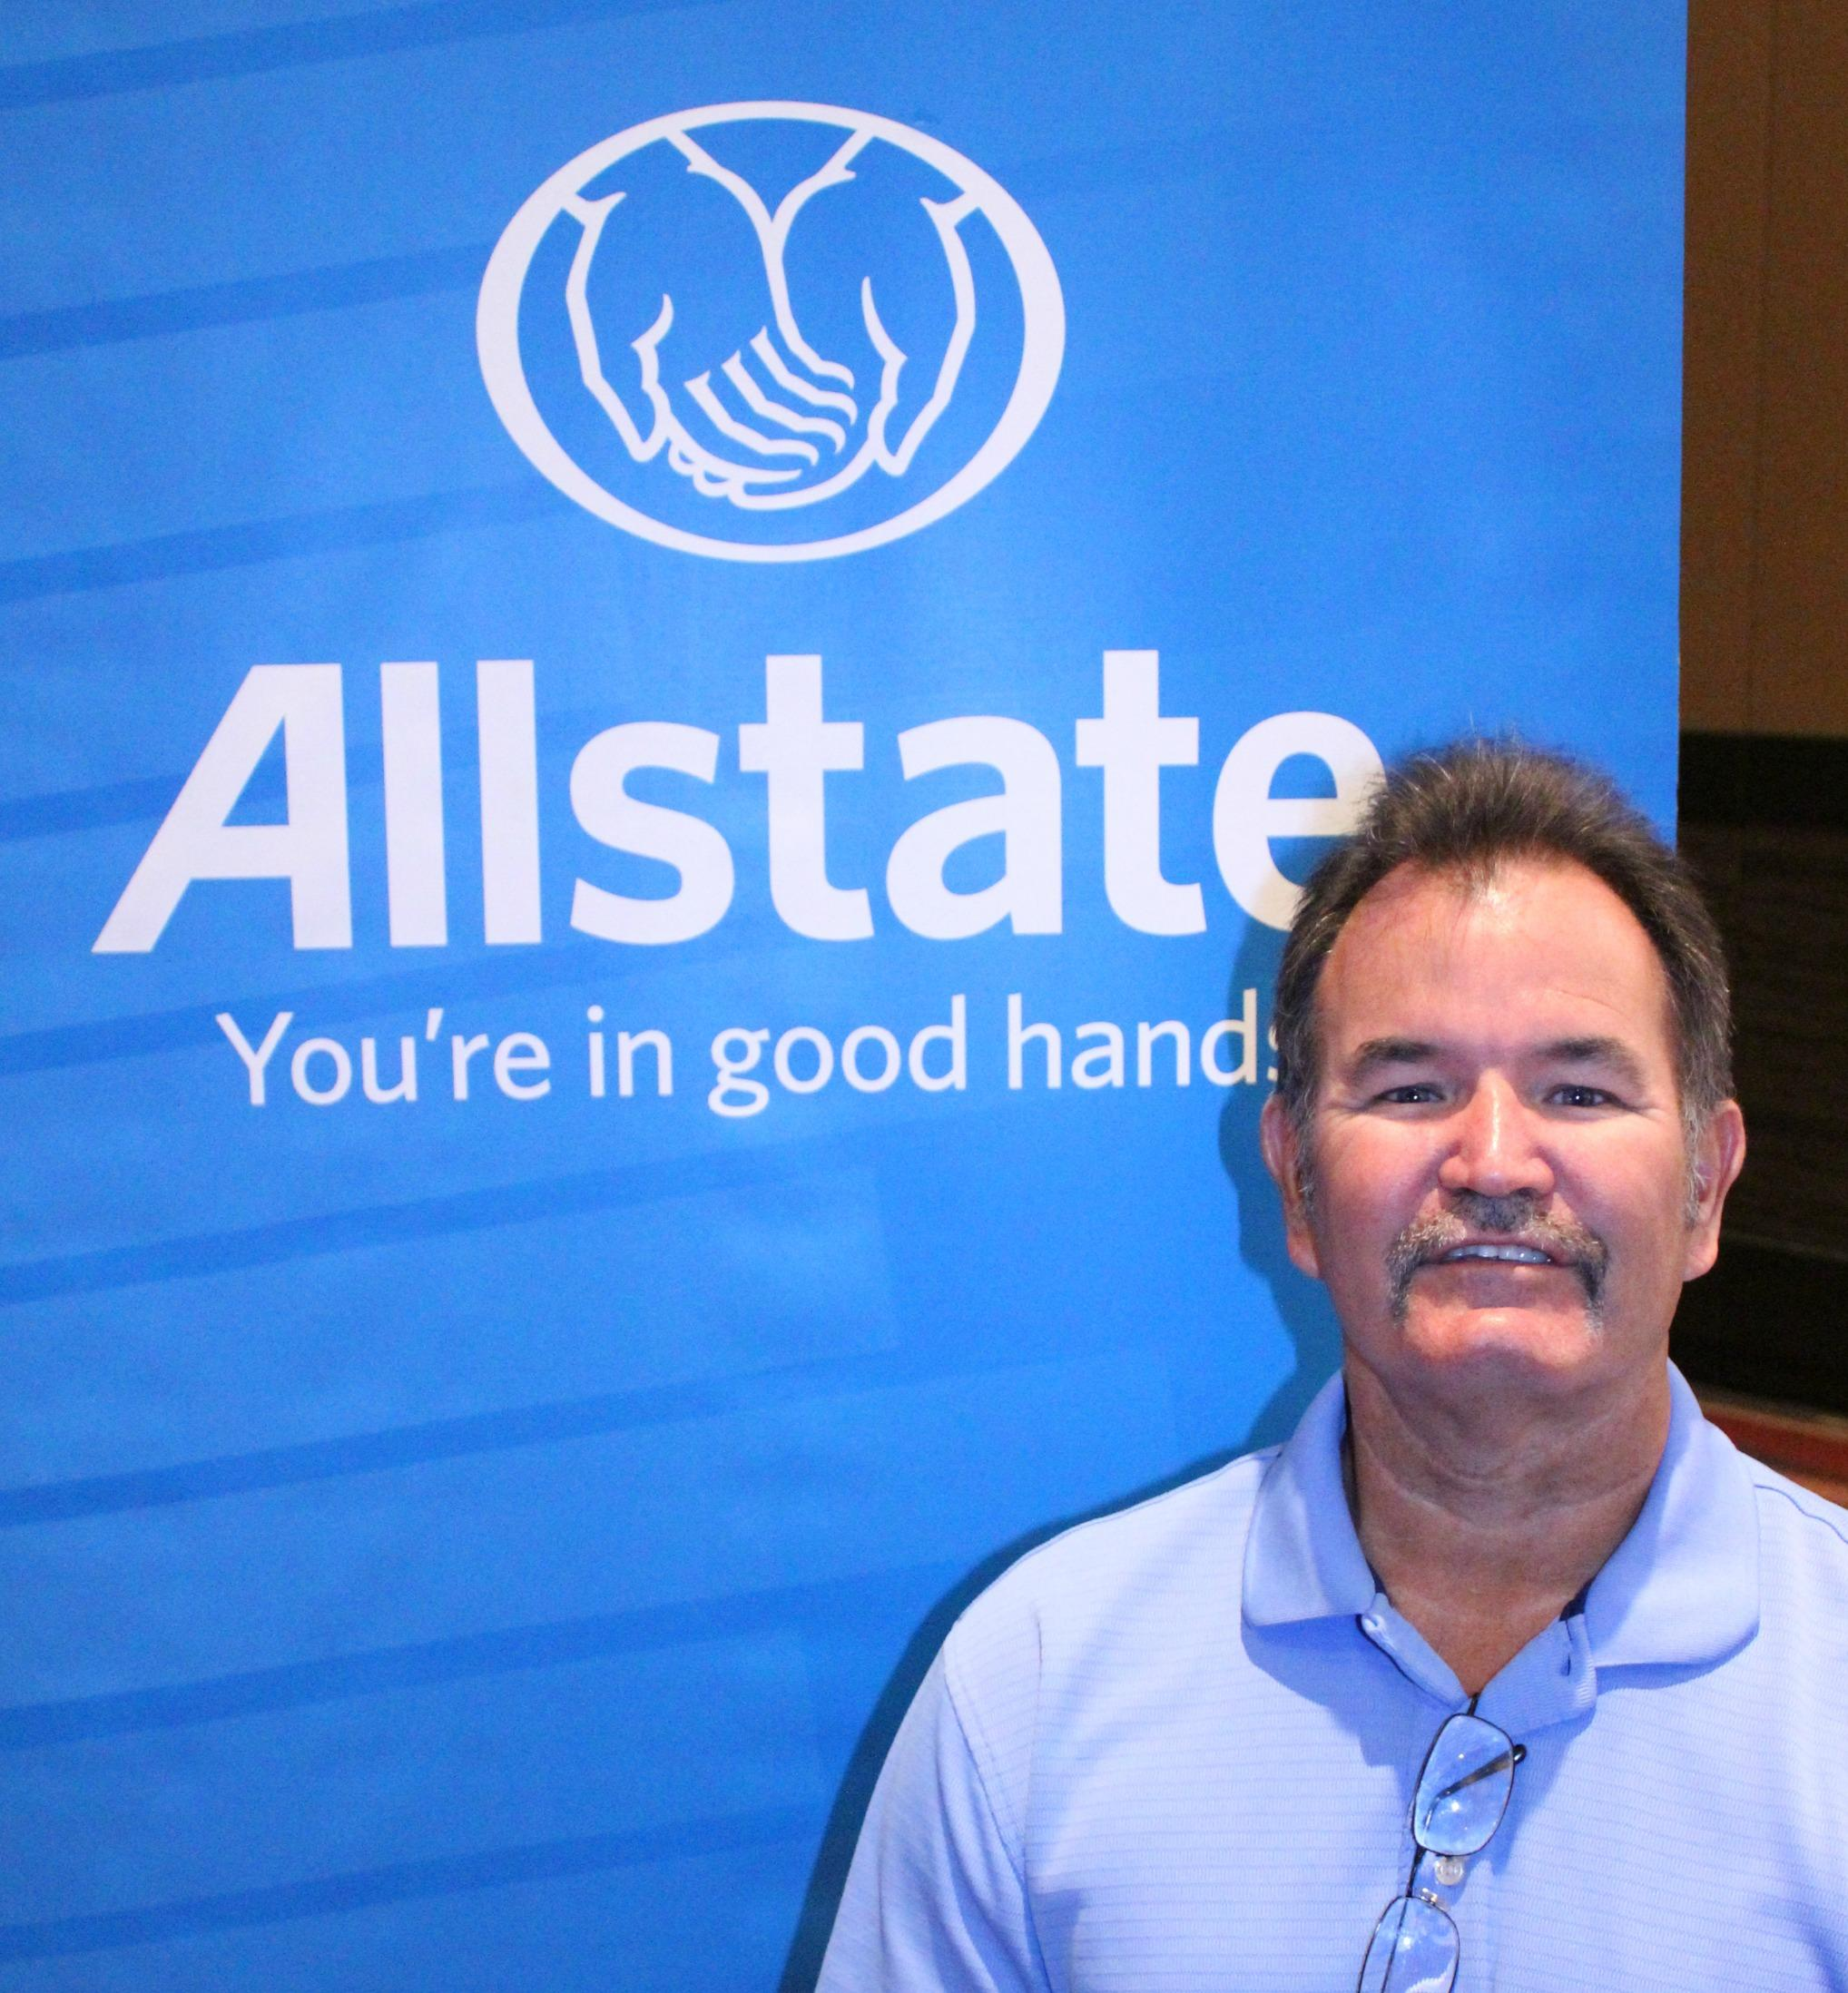 Allstate Insurance Quote: Steve Sutto: Allstate Insurance, Sun City Arizona (AZ